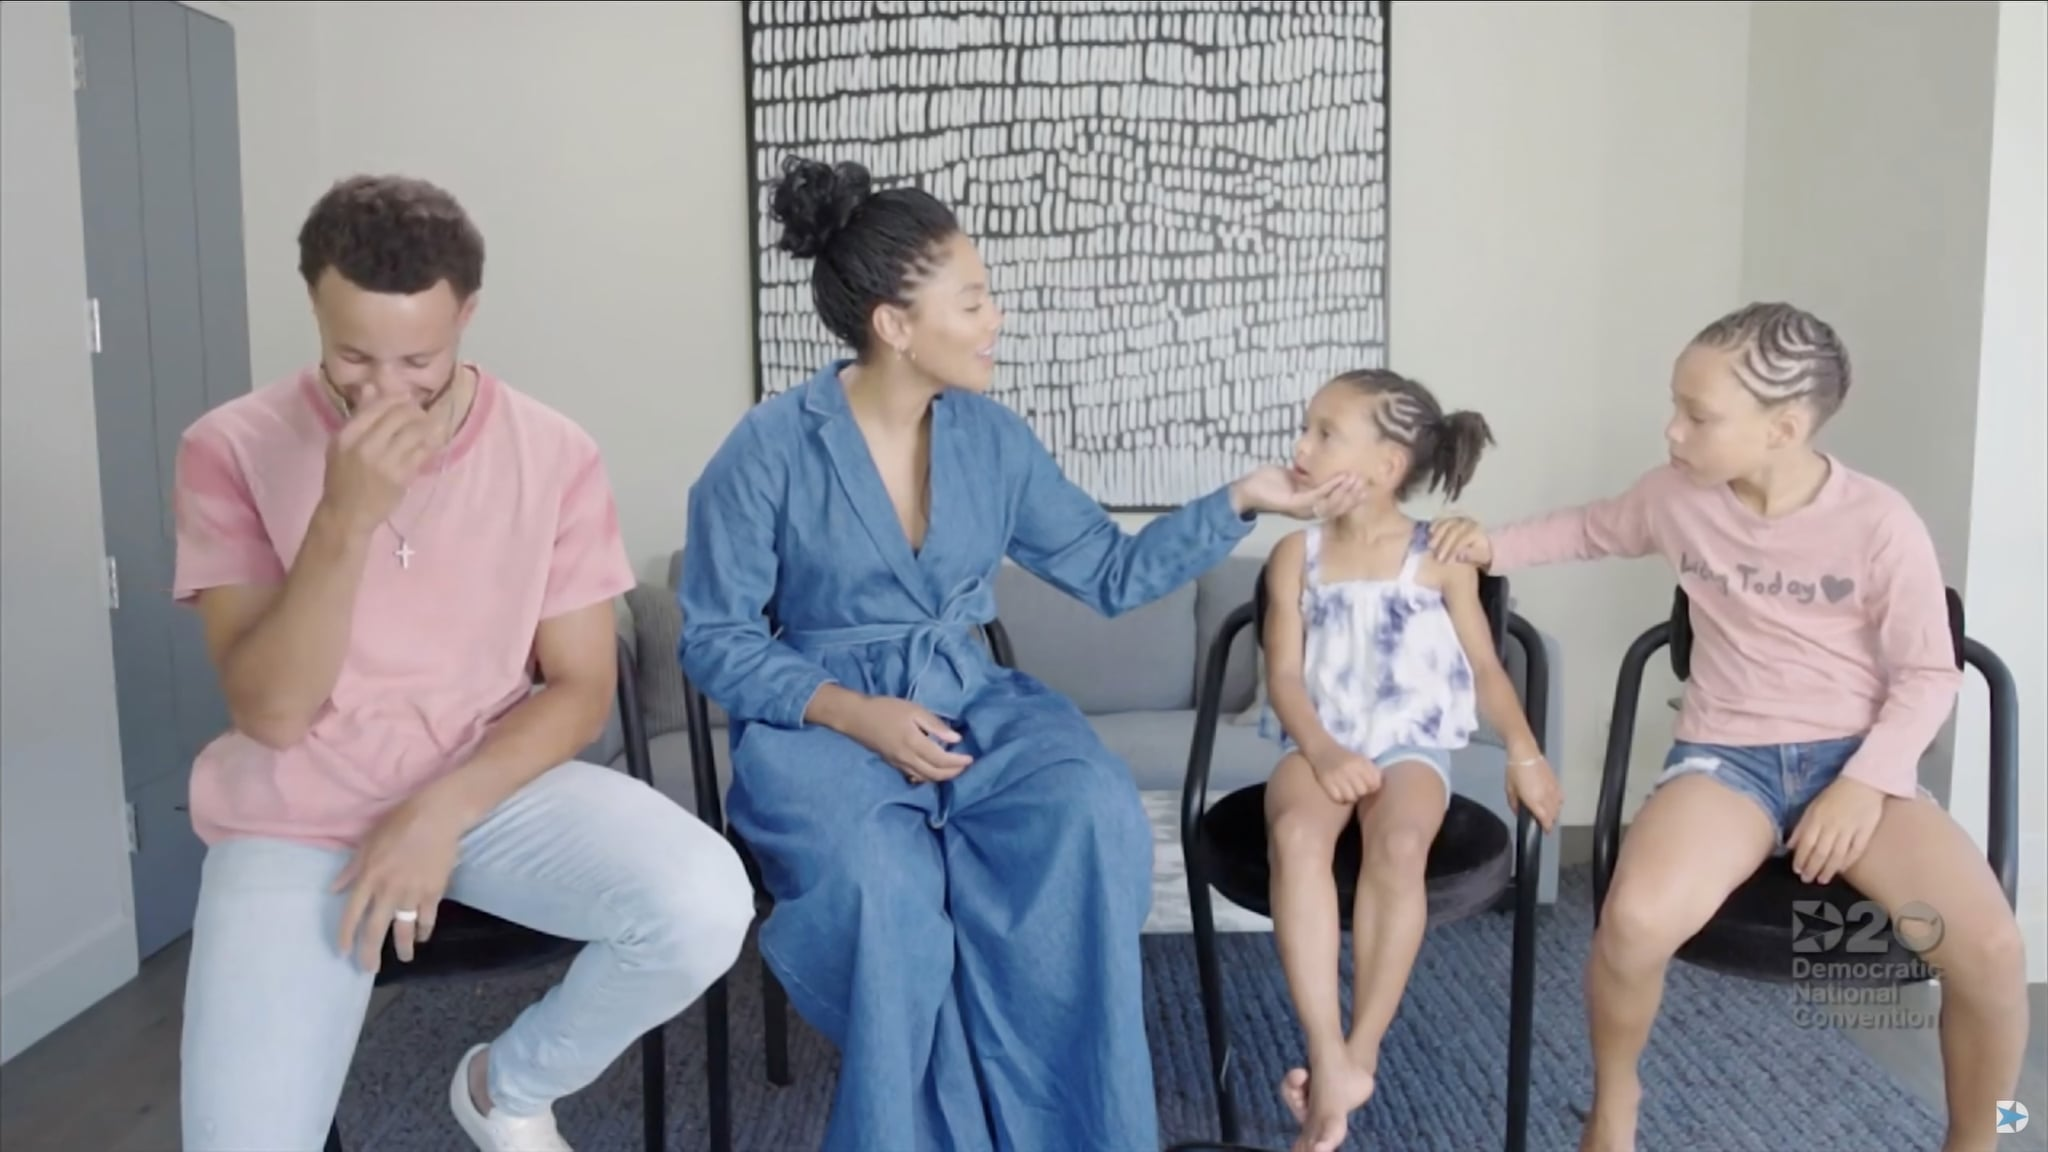 MILWAUKEE, WI - AUGUST 20: In this screenshot from the DNCC's livestream of the 2020 Democratic National Convention, NBA athlete Stephen Curry, his wife Ayesha Curry and children Ryan and Riley address the virtual convention on August 20, 2020.  The convention, which was once expected to draw 50,000 people to Milwaukee, Wisconsin, is now taking place virtually due to the coronavirus pandemic.  (Photo by DNCC via Getty Images)  (Photo by Handout/DNCC via Getty Images)